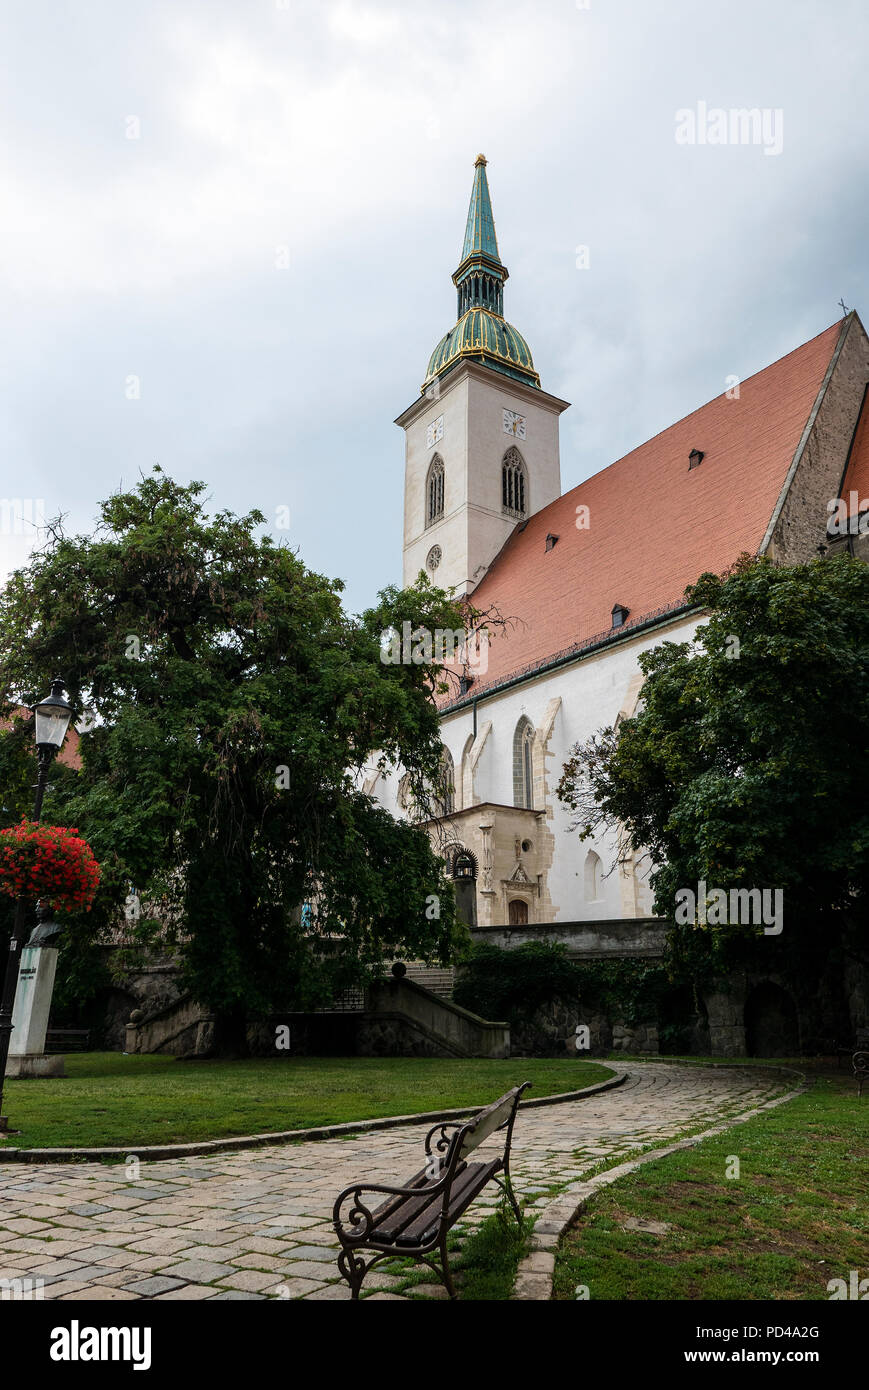 15 century Gothic Katedrála svätého Martina/St Martin's Cathedral (Bratislava) wears a Baroque spire. Once the coronation church of  Hungarian kings. - Stock Image